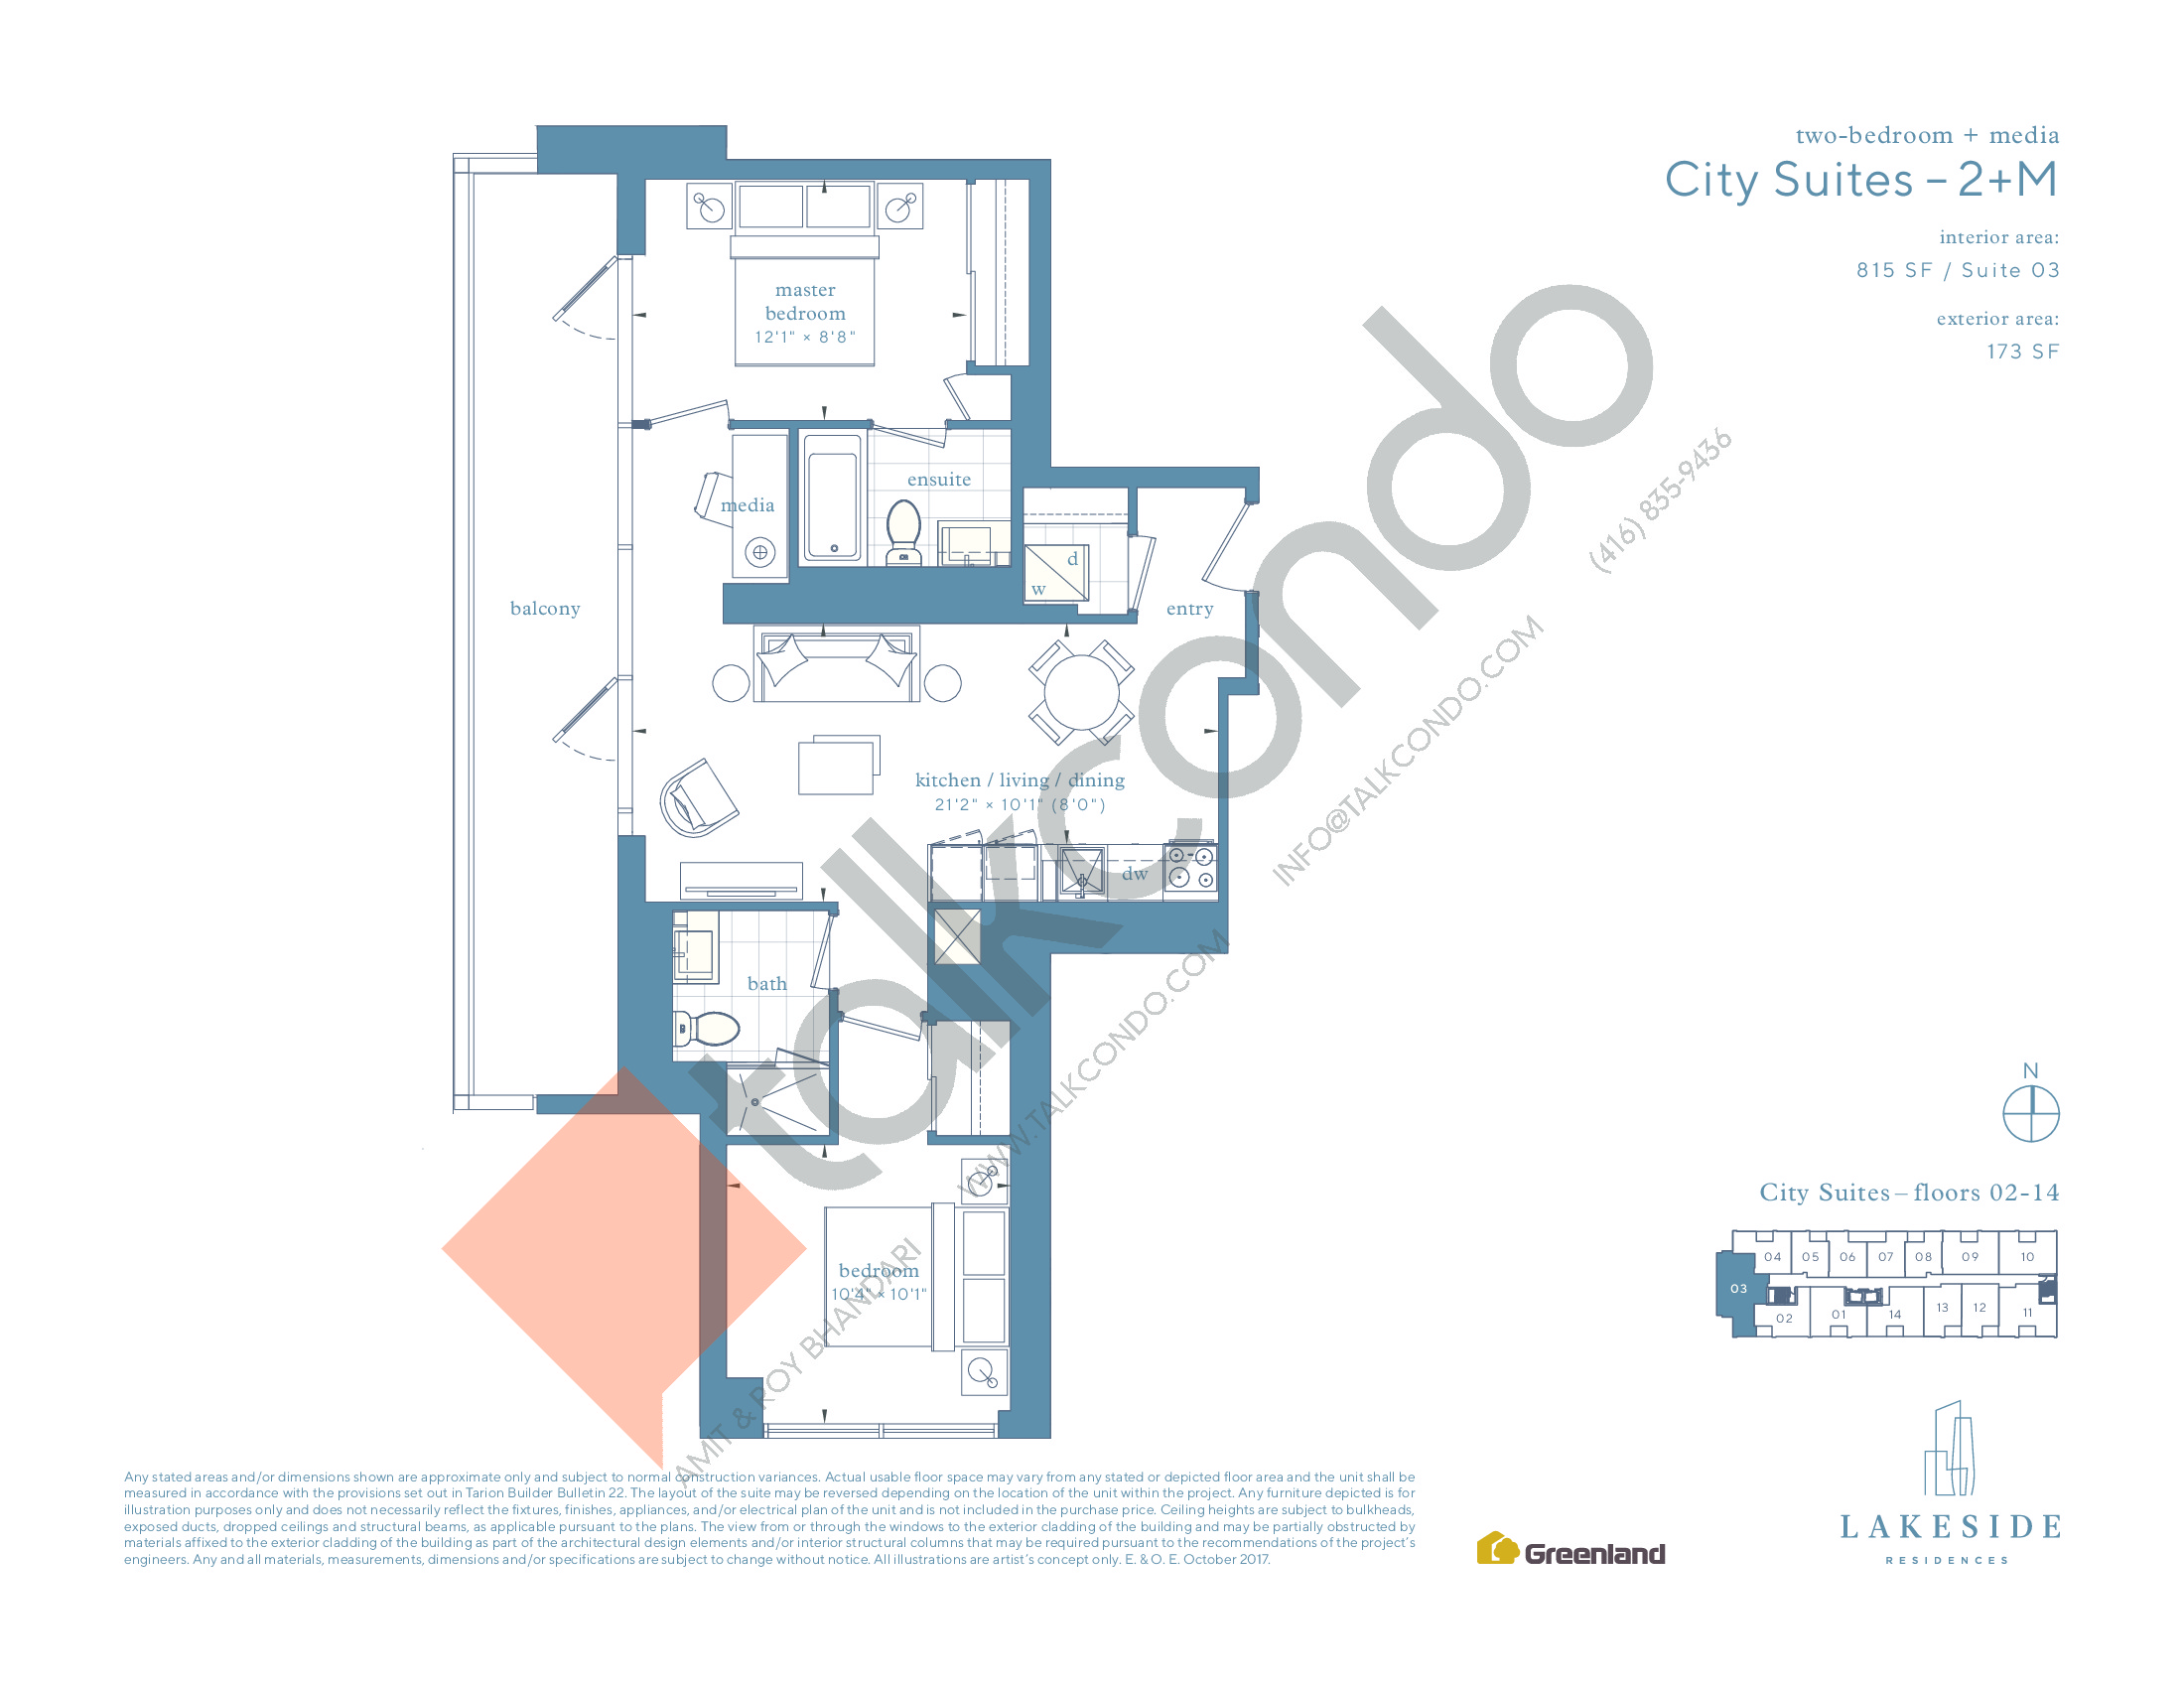 City Suites - 2+M Floor Plan at Lakeside Residences - 815 sq.ft